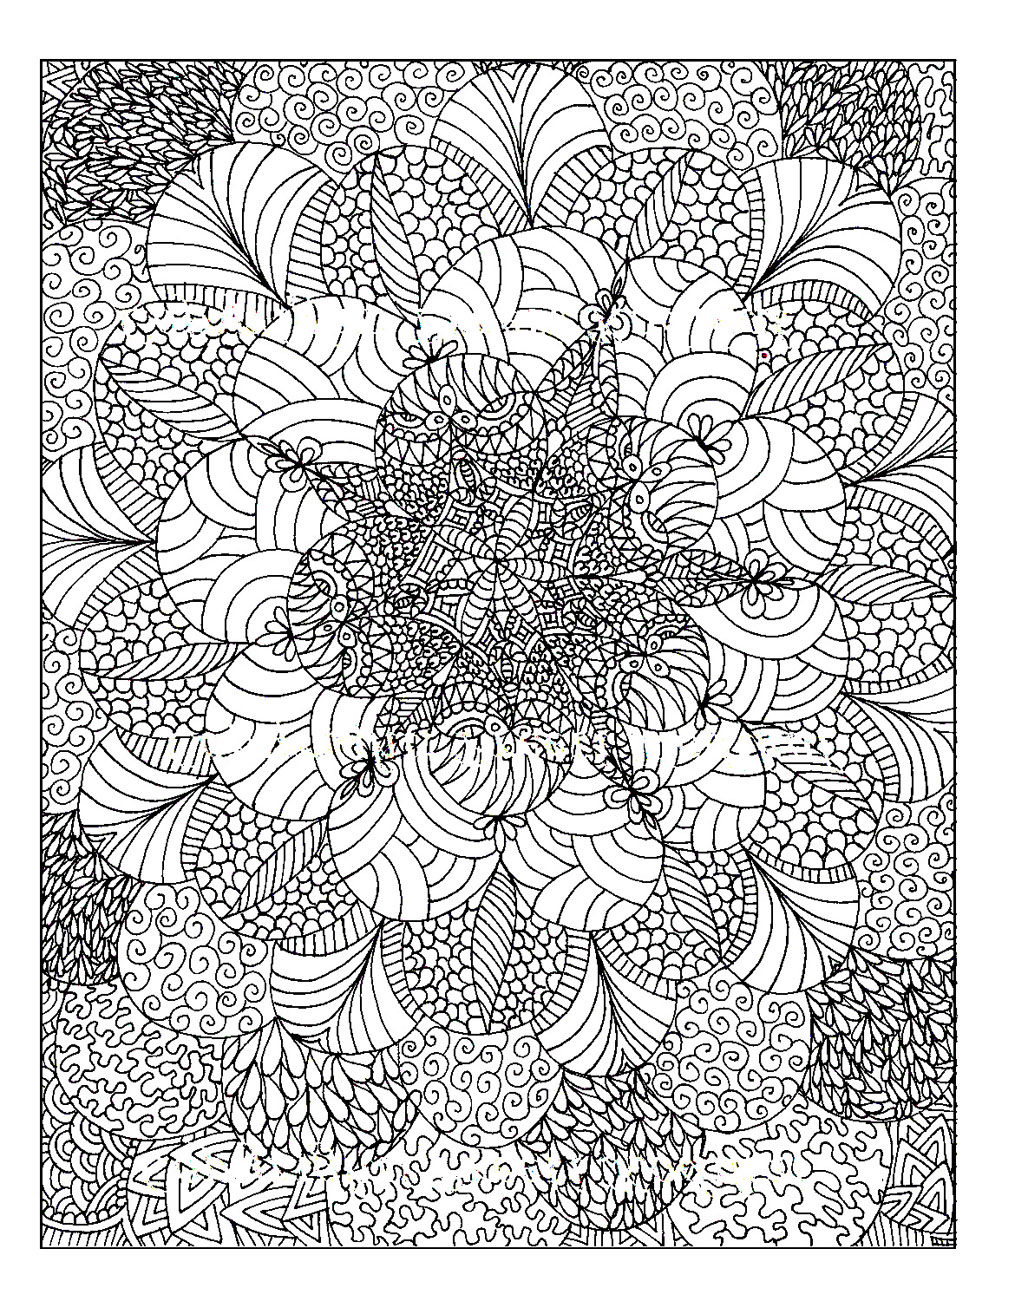 Colouring For Adults Anti Stress Colouring Printables Colouring In Pages For Adults